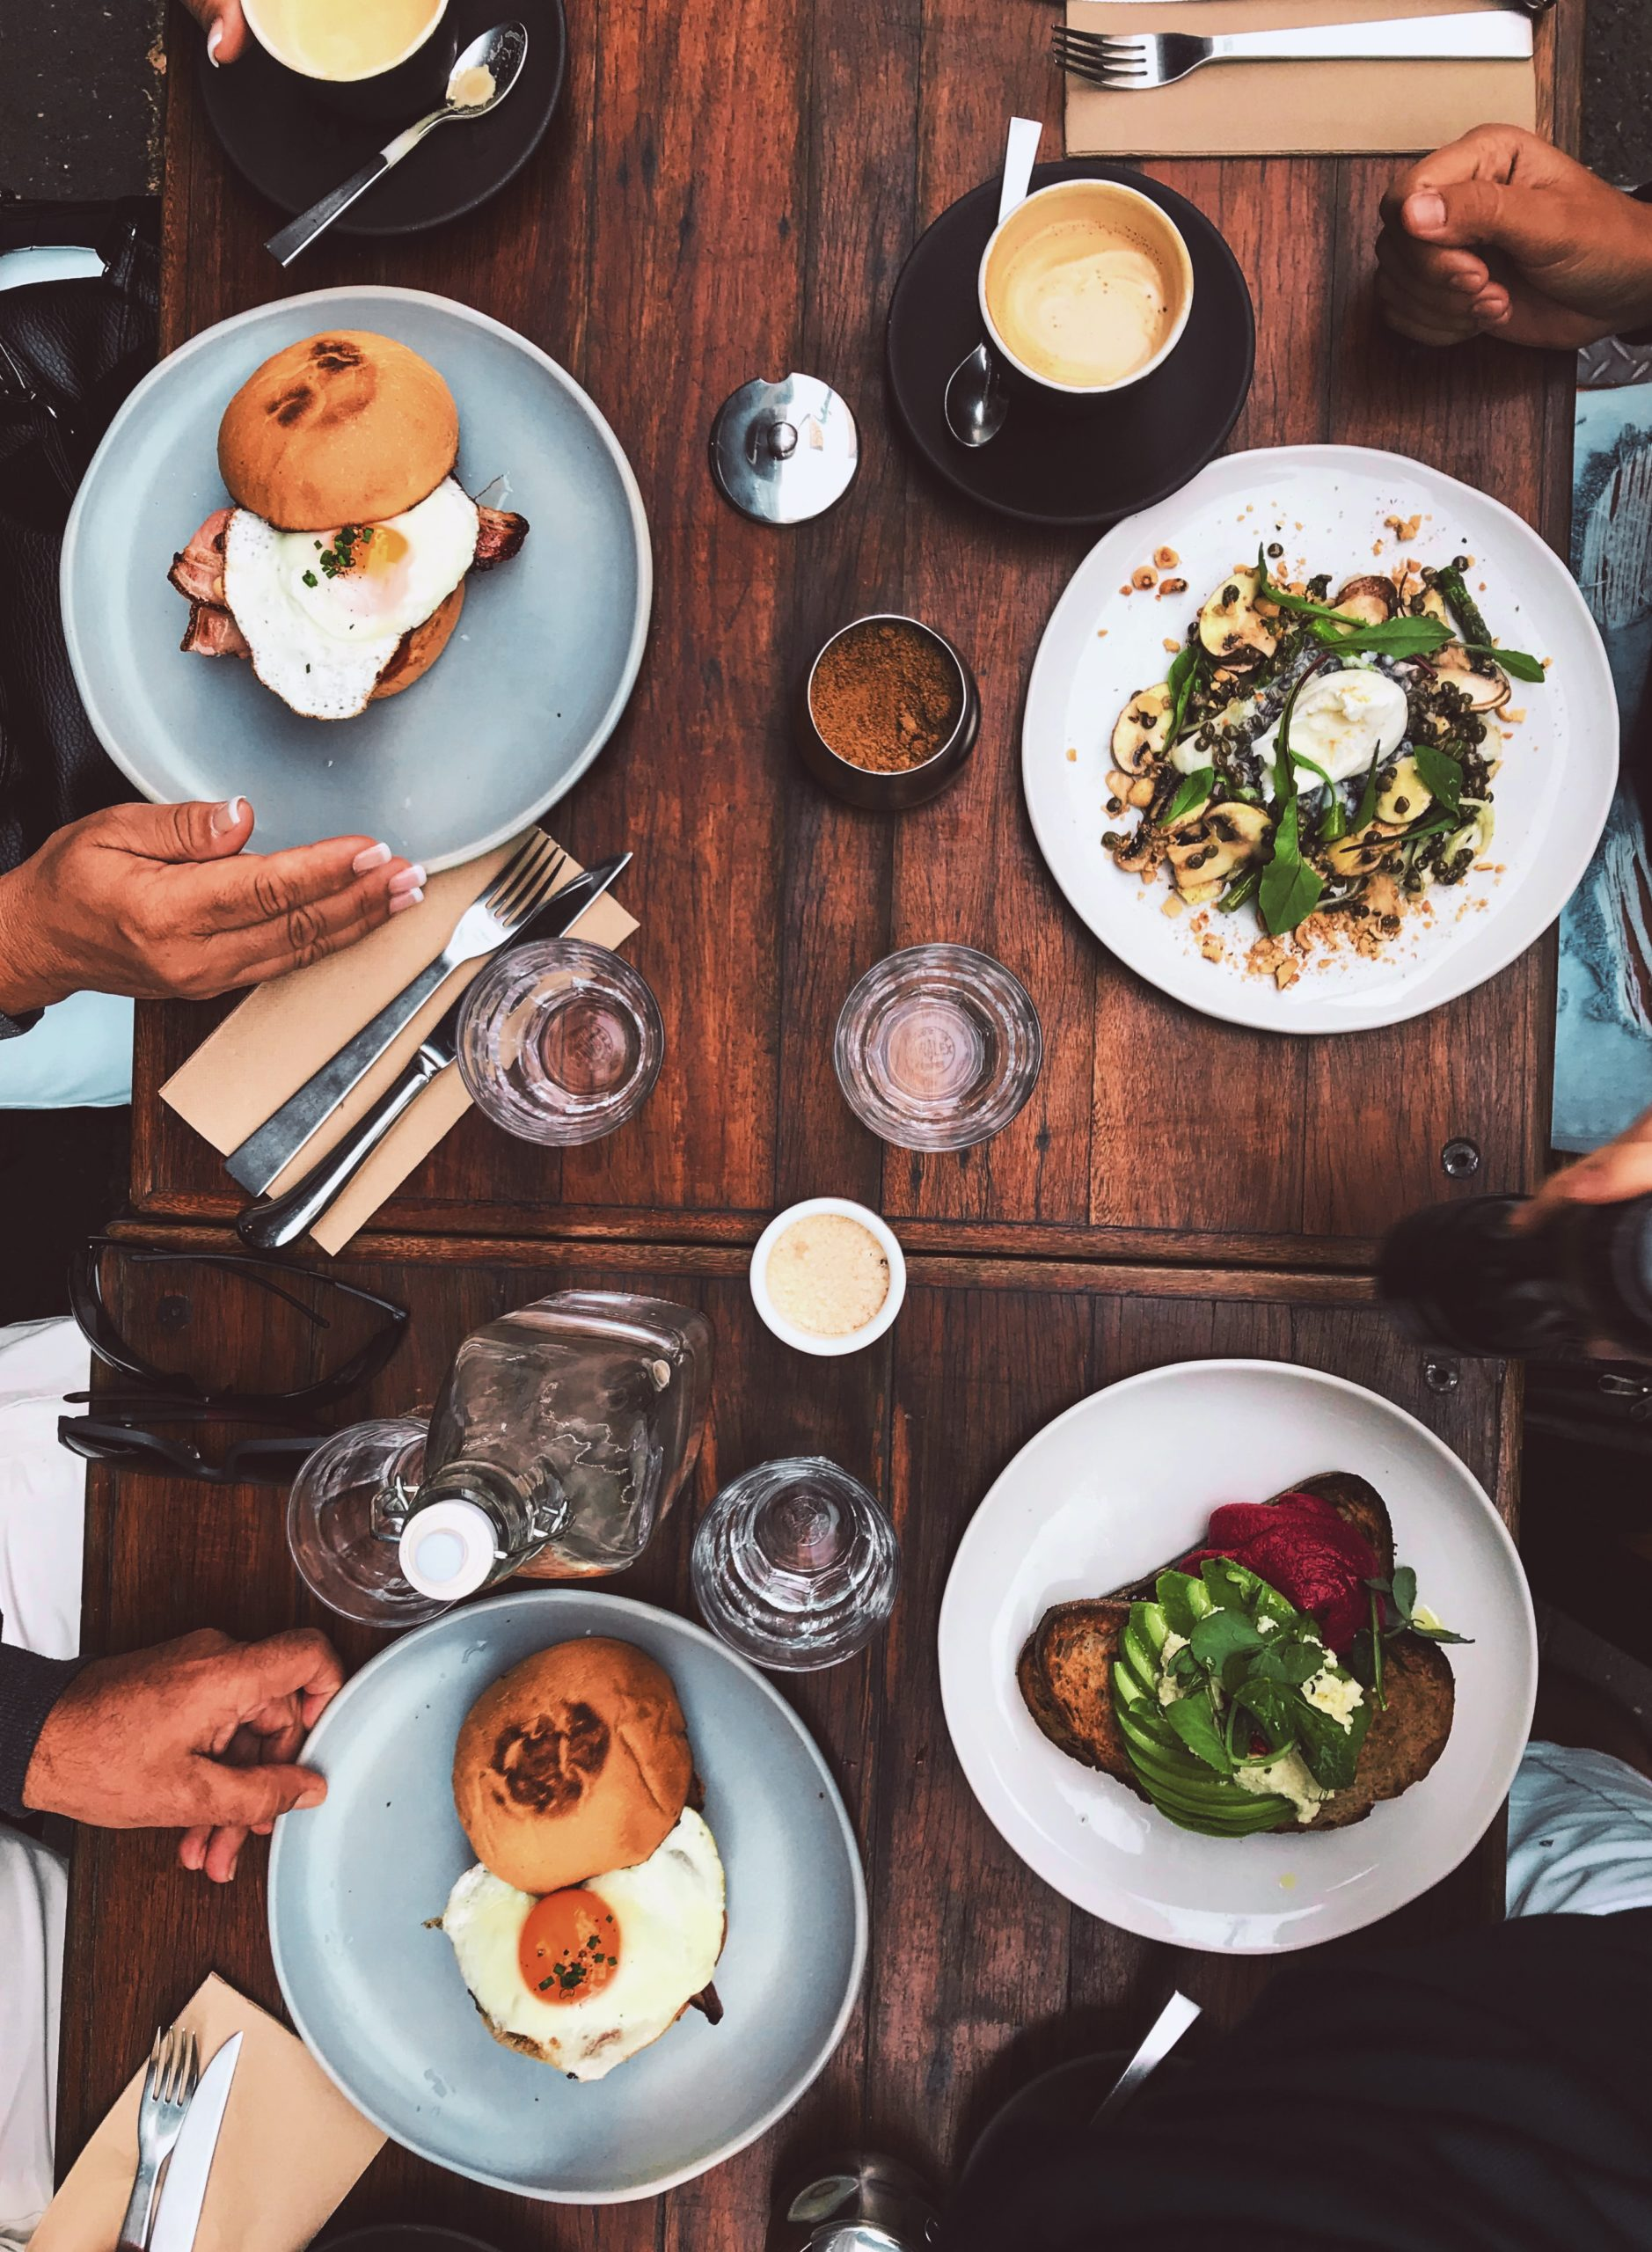 Looking for places to eat breakfast in the south loop